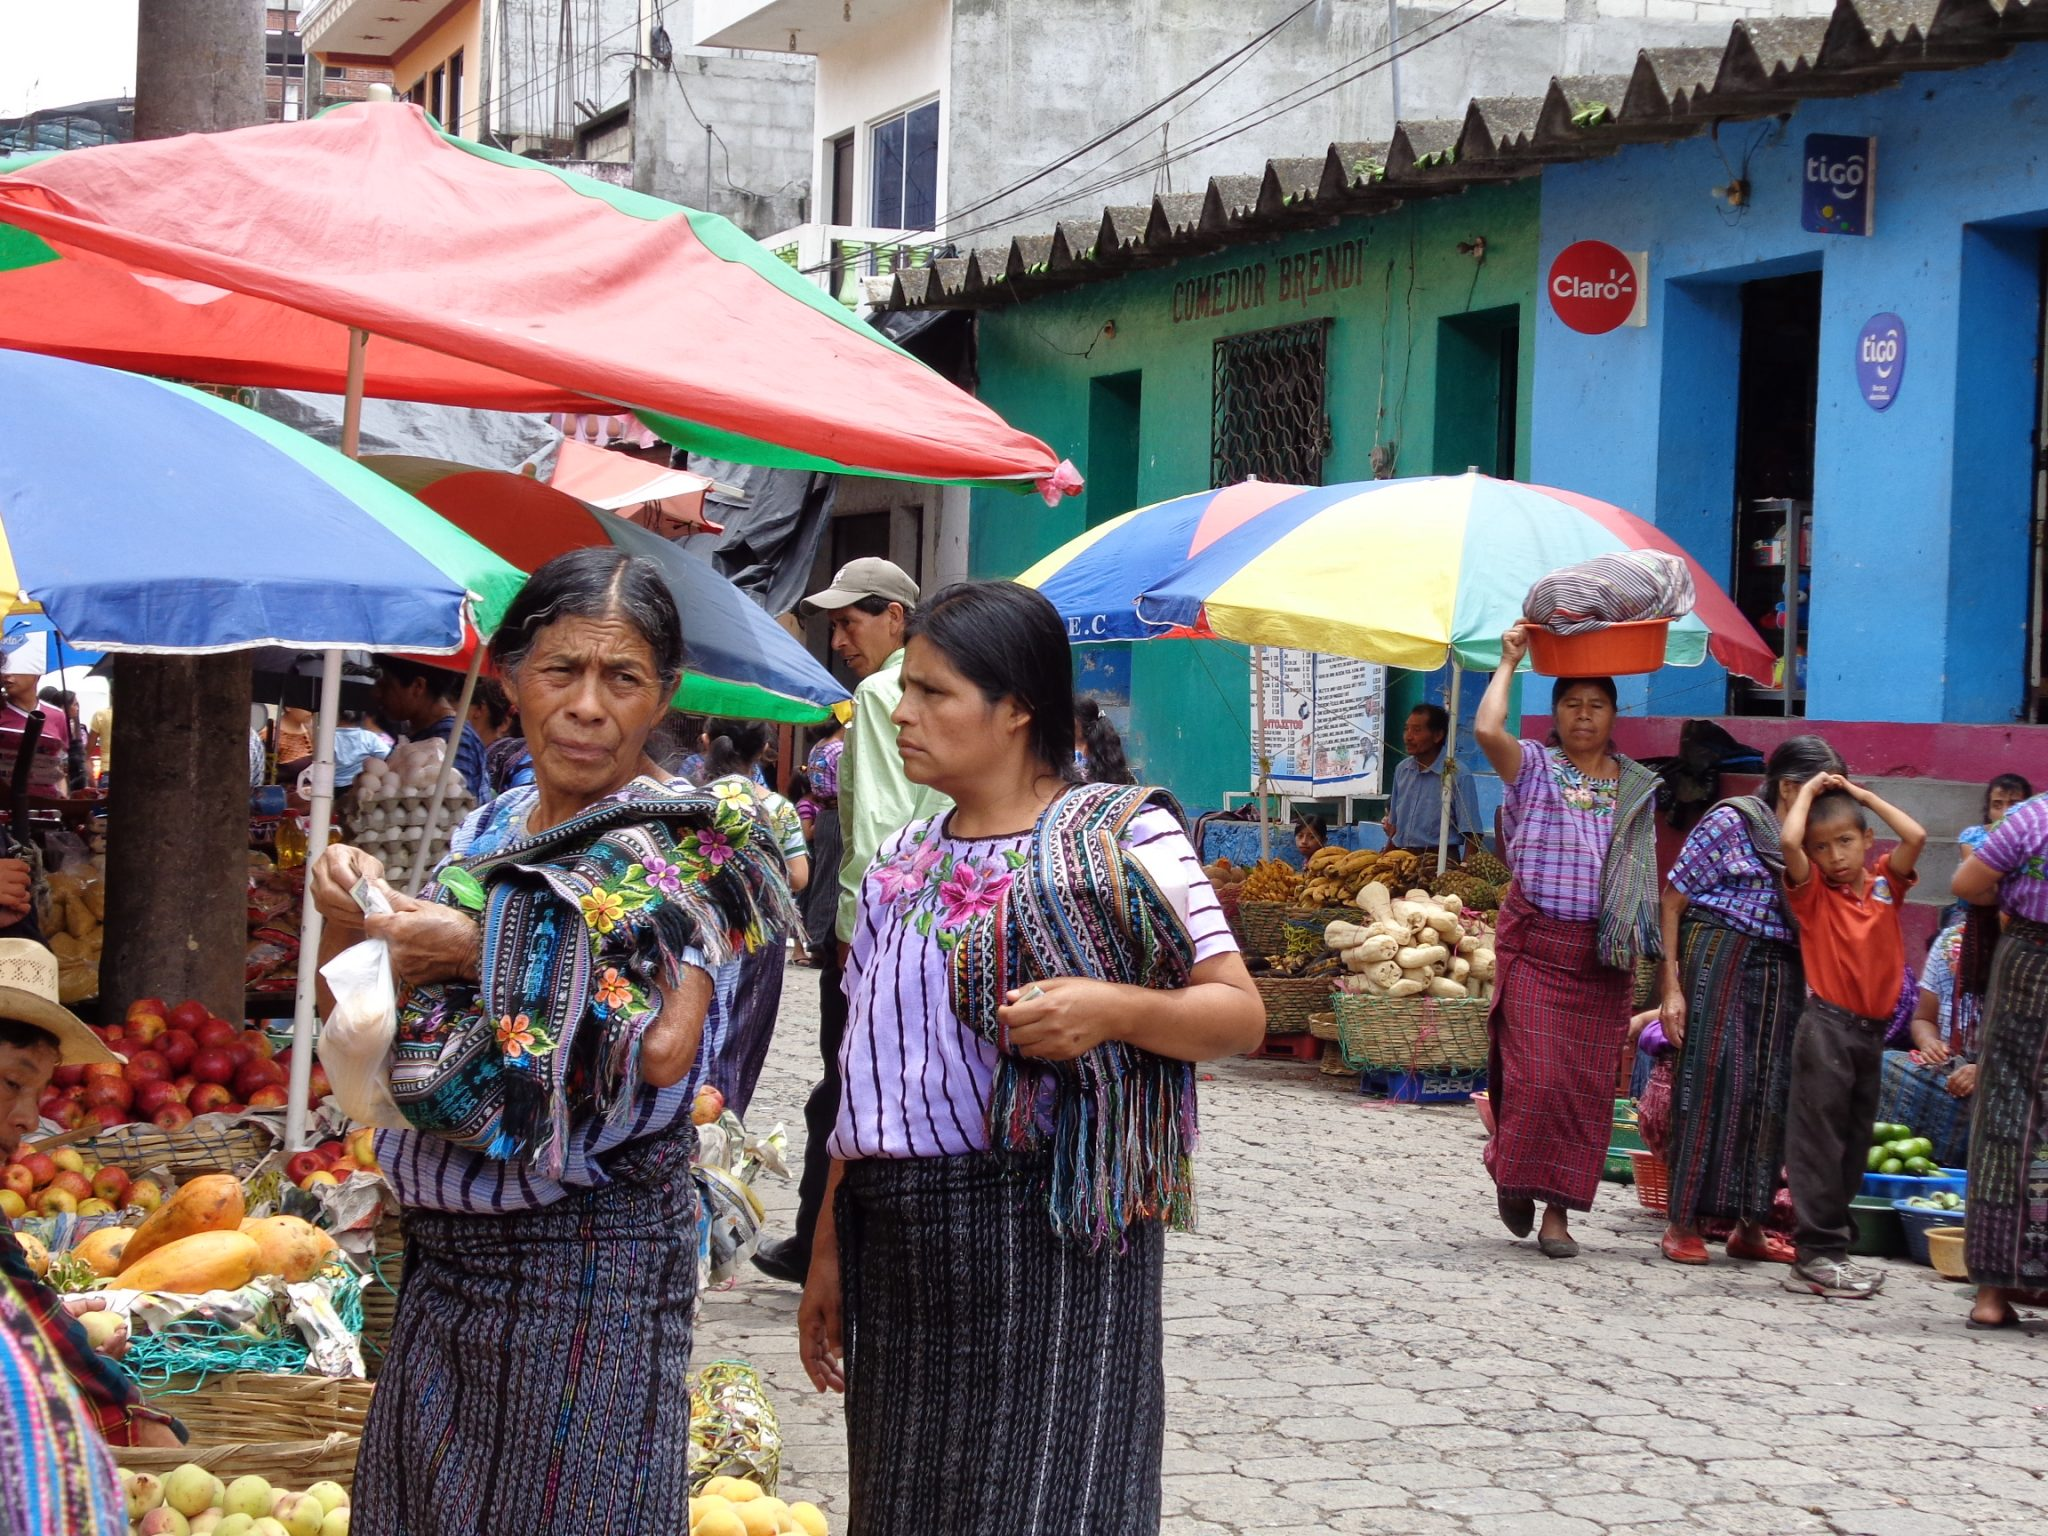 A Typical Day in Guatemala